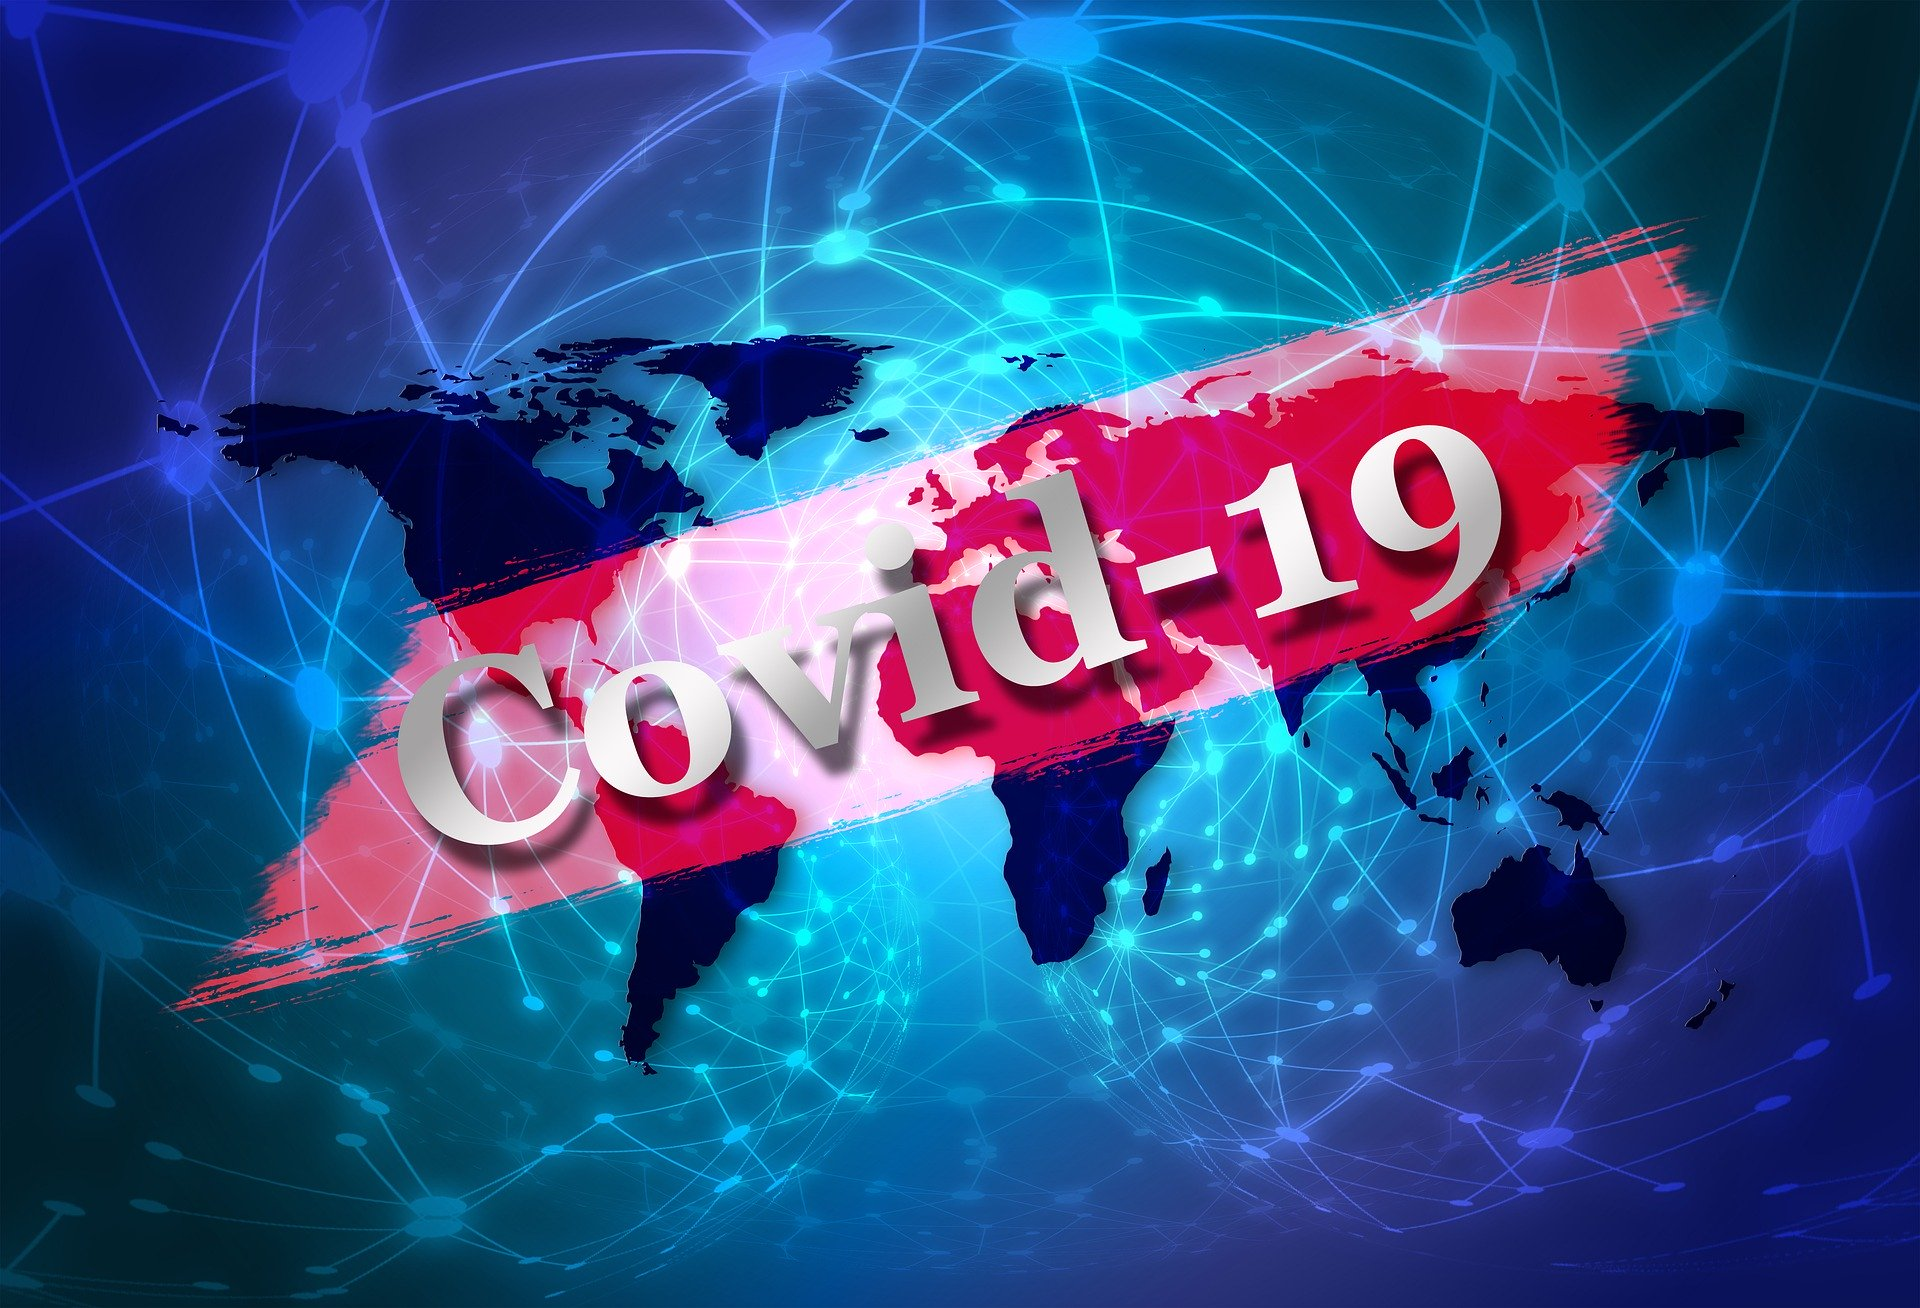 COVID-19 World Image For Your Digital Signage